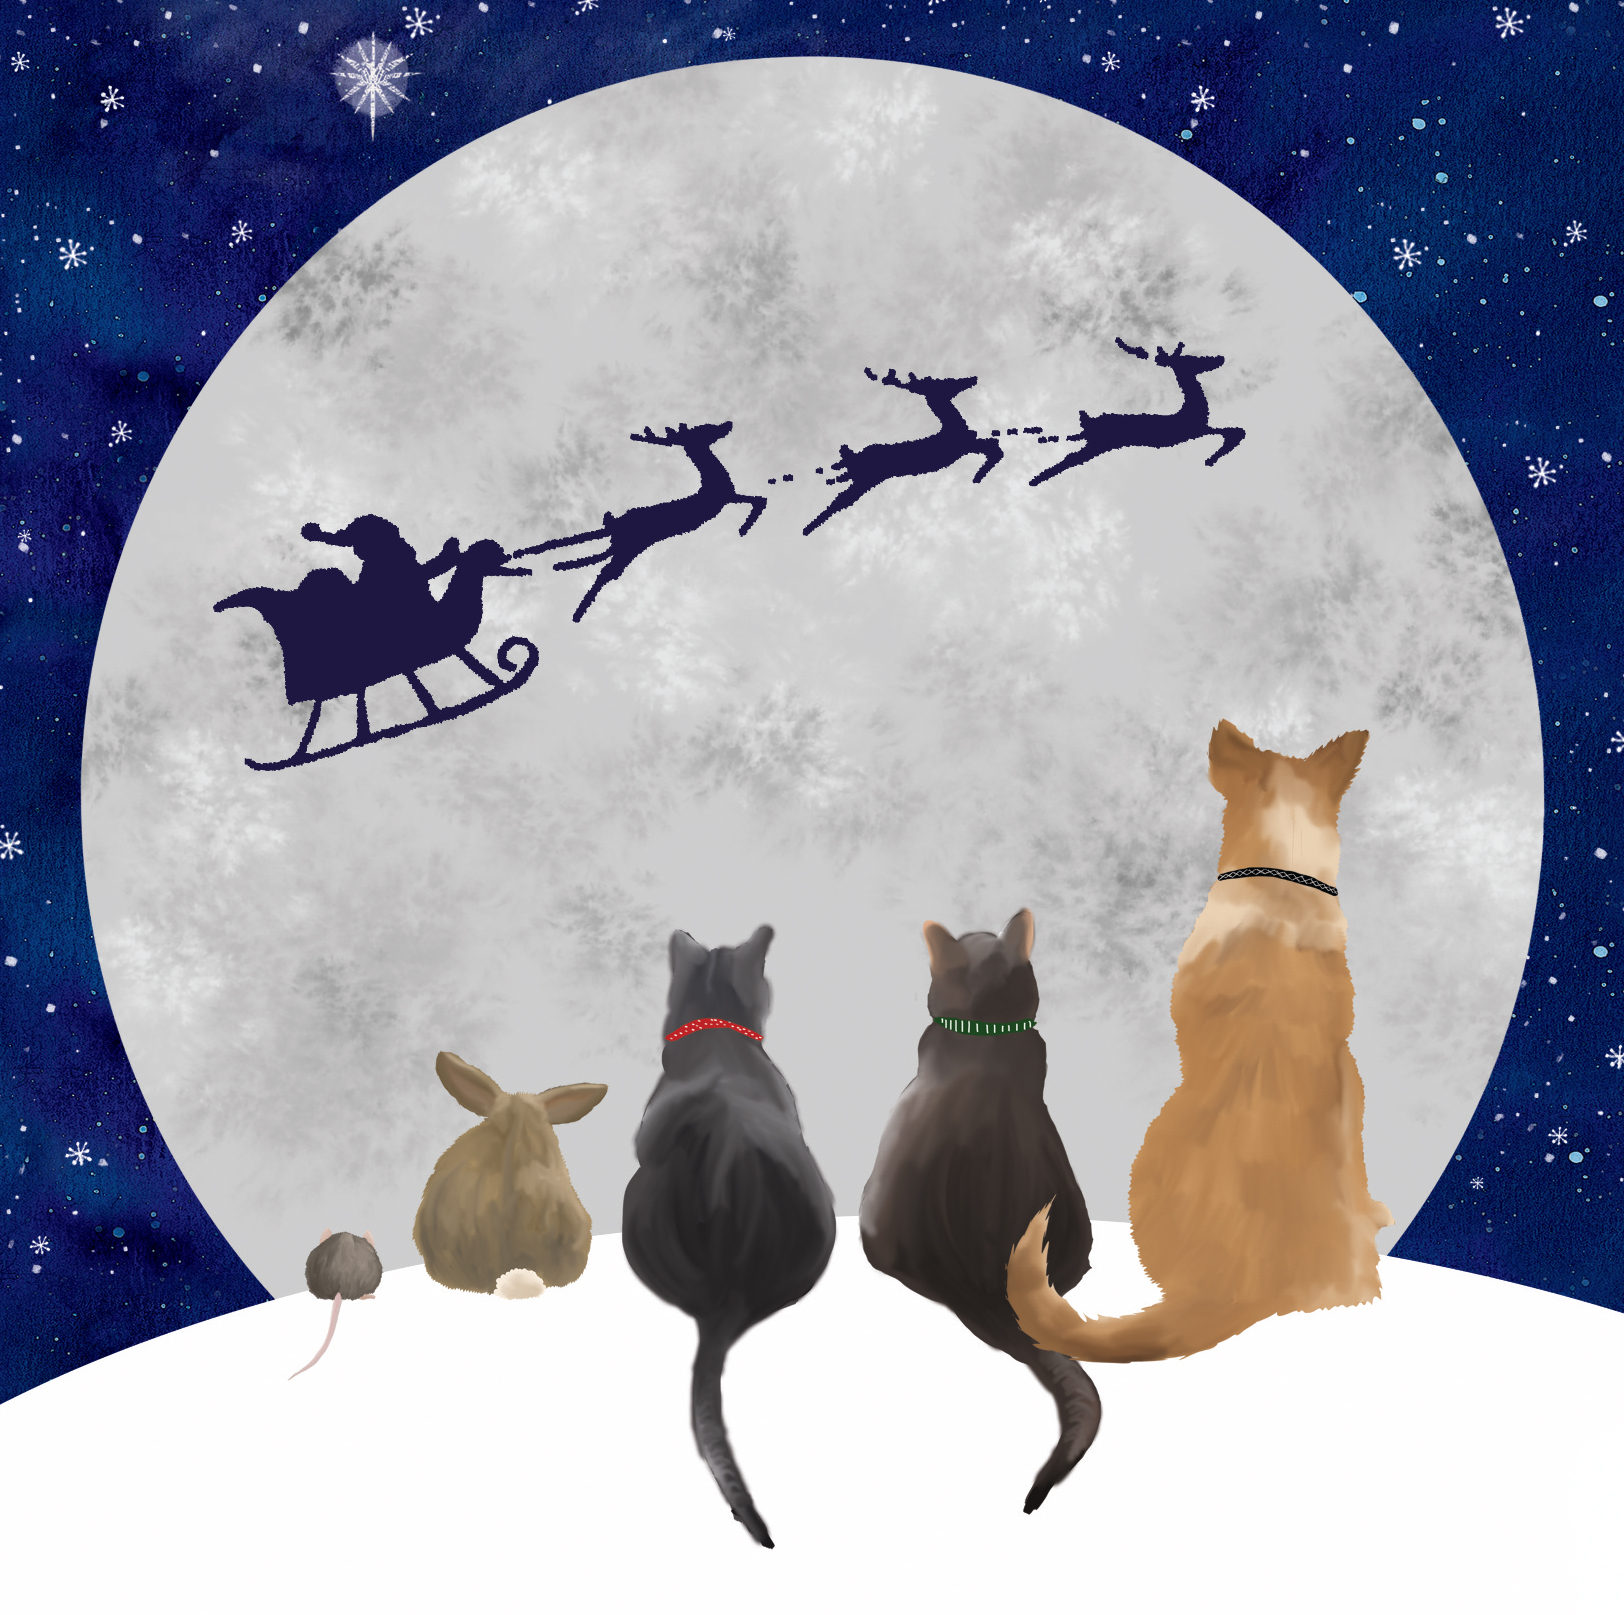 Cats watching santa fly past the moon